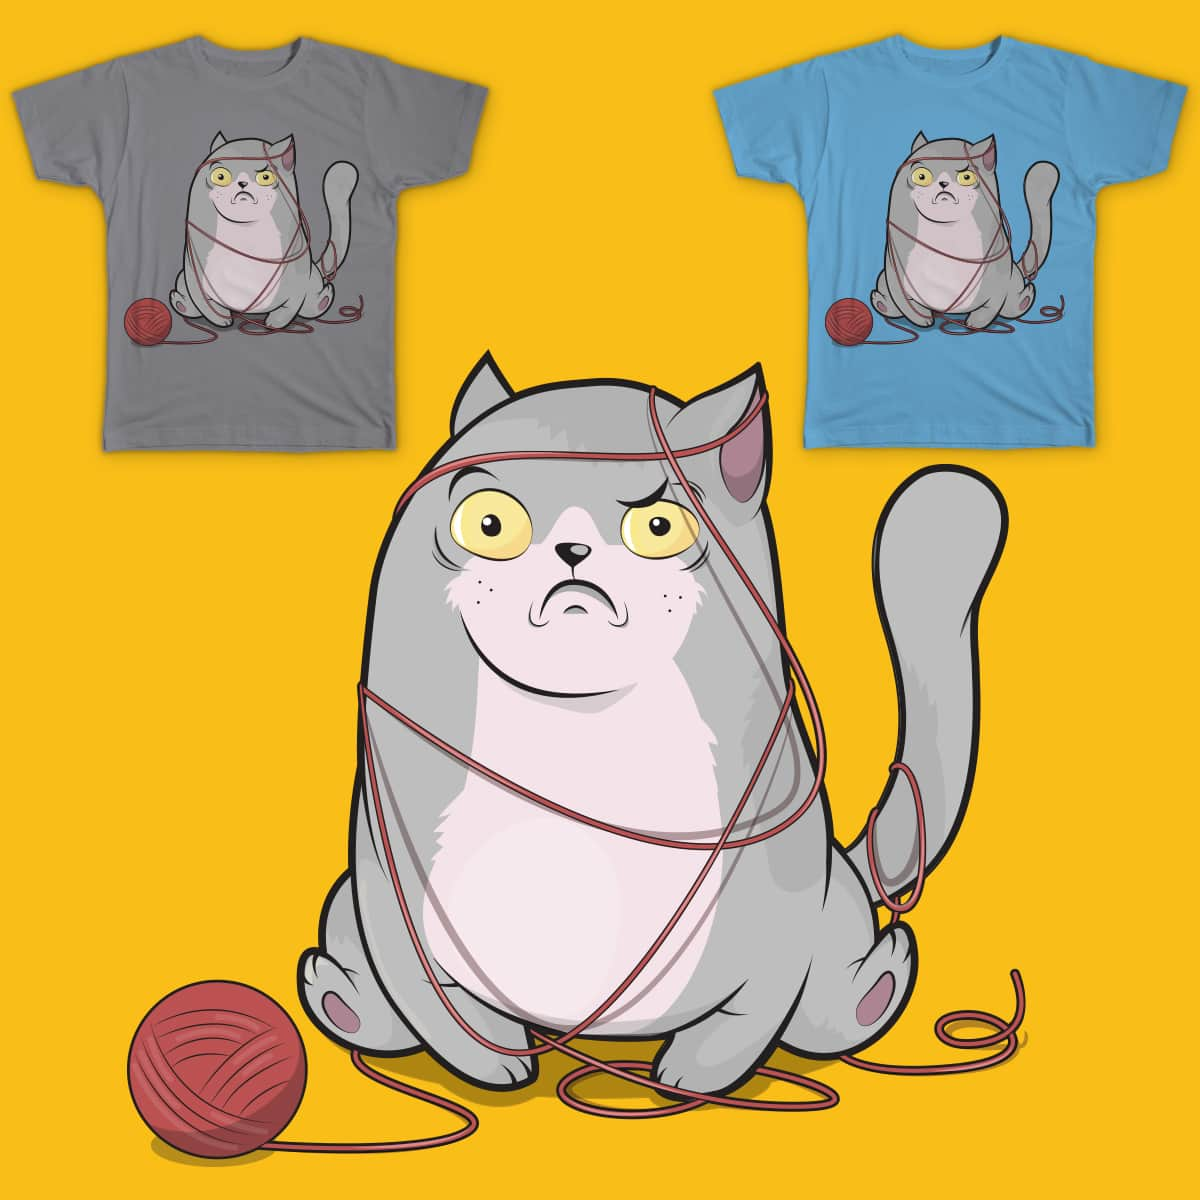 The Tangled Cat by koboox and alexpestov on Threadless